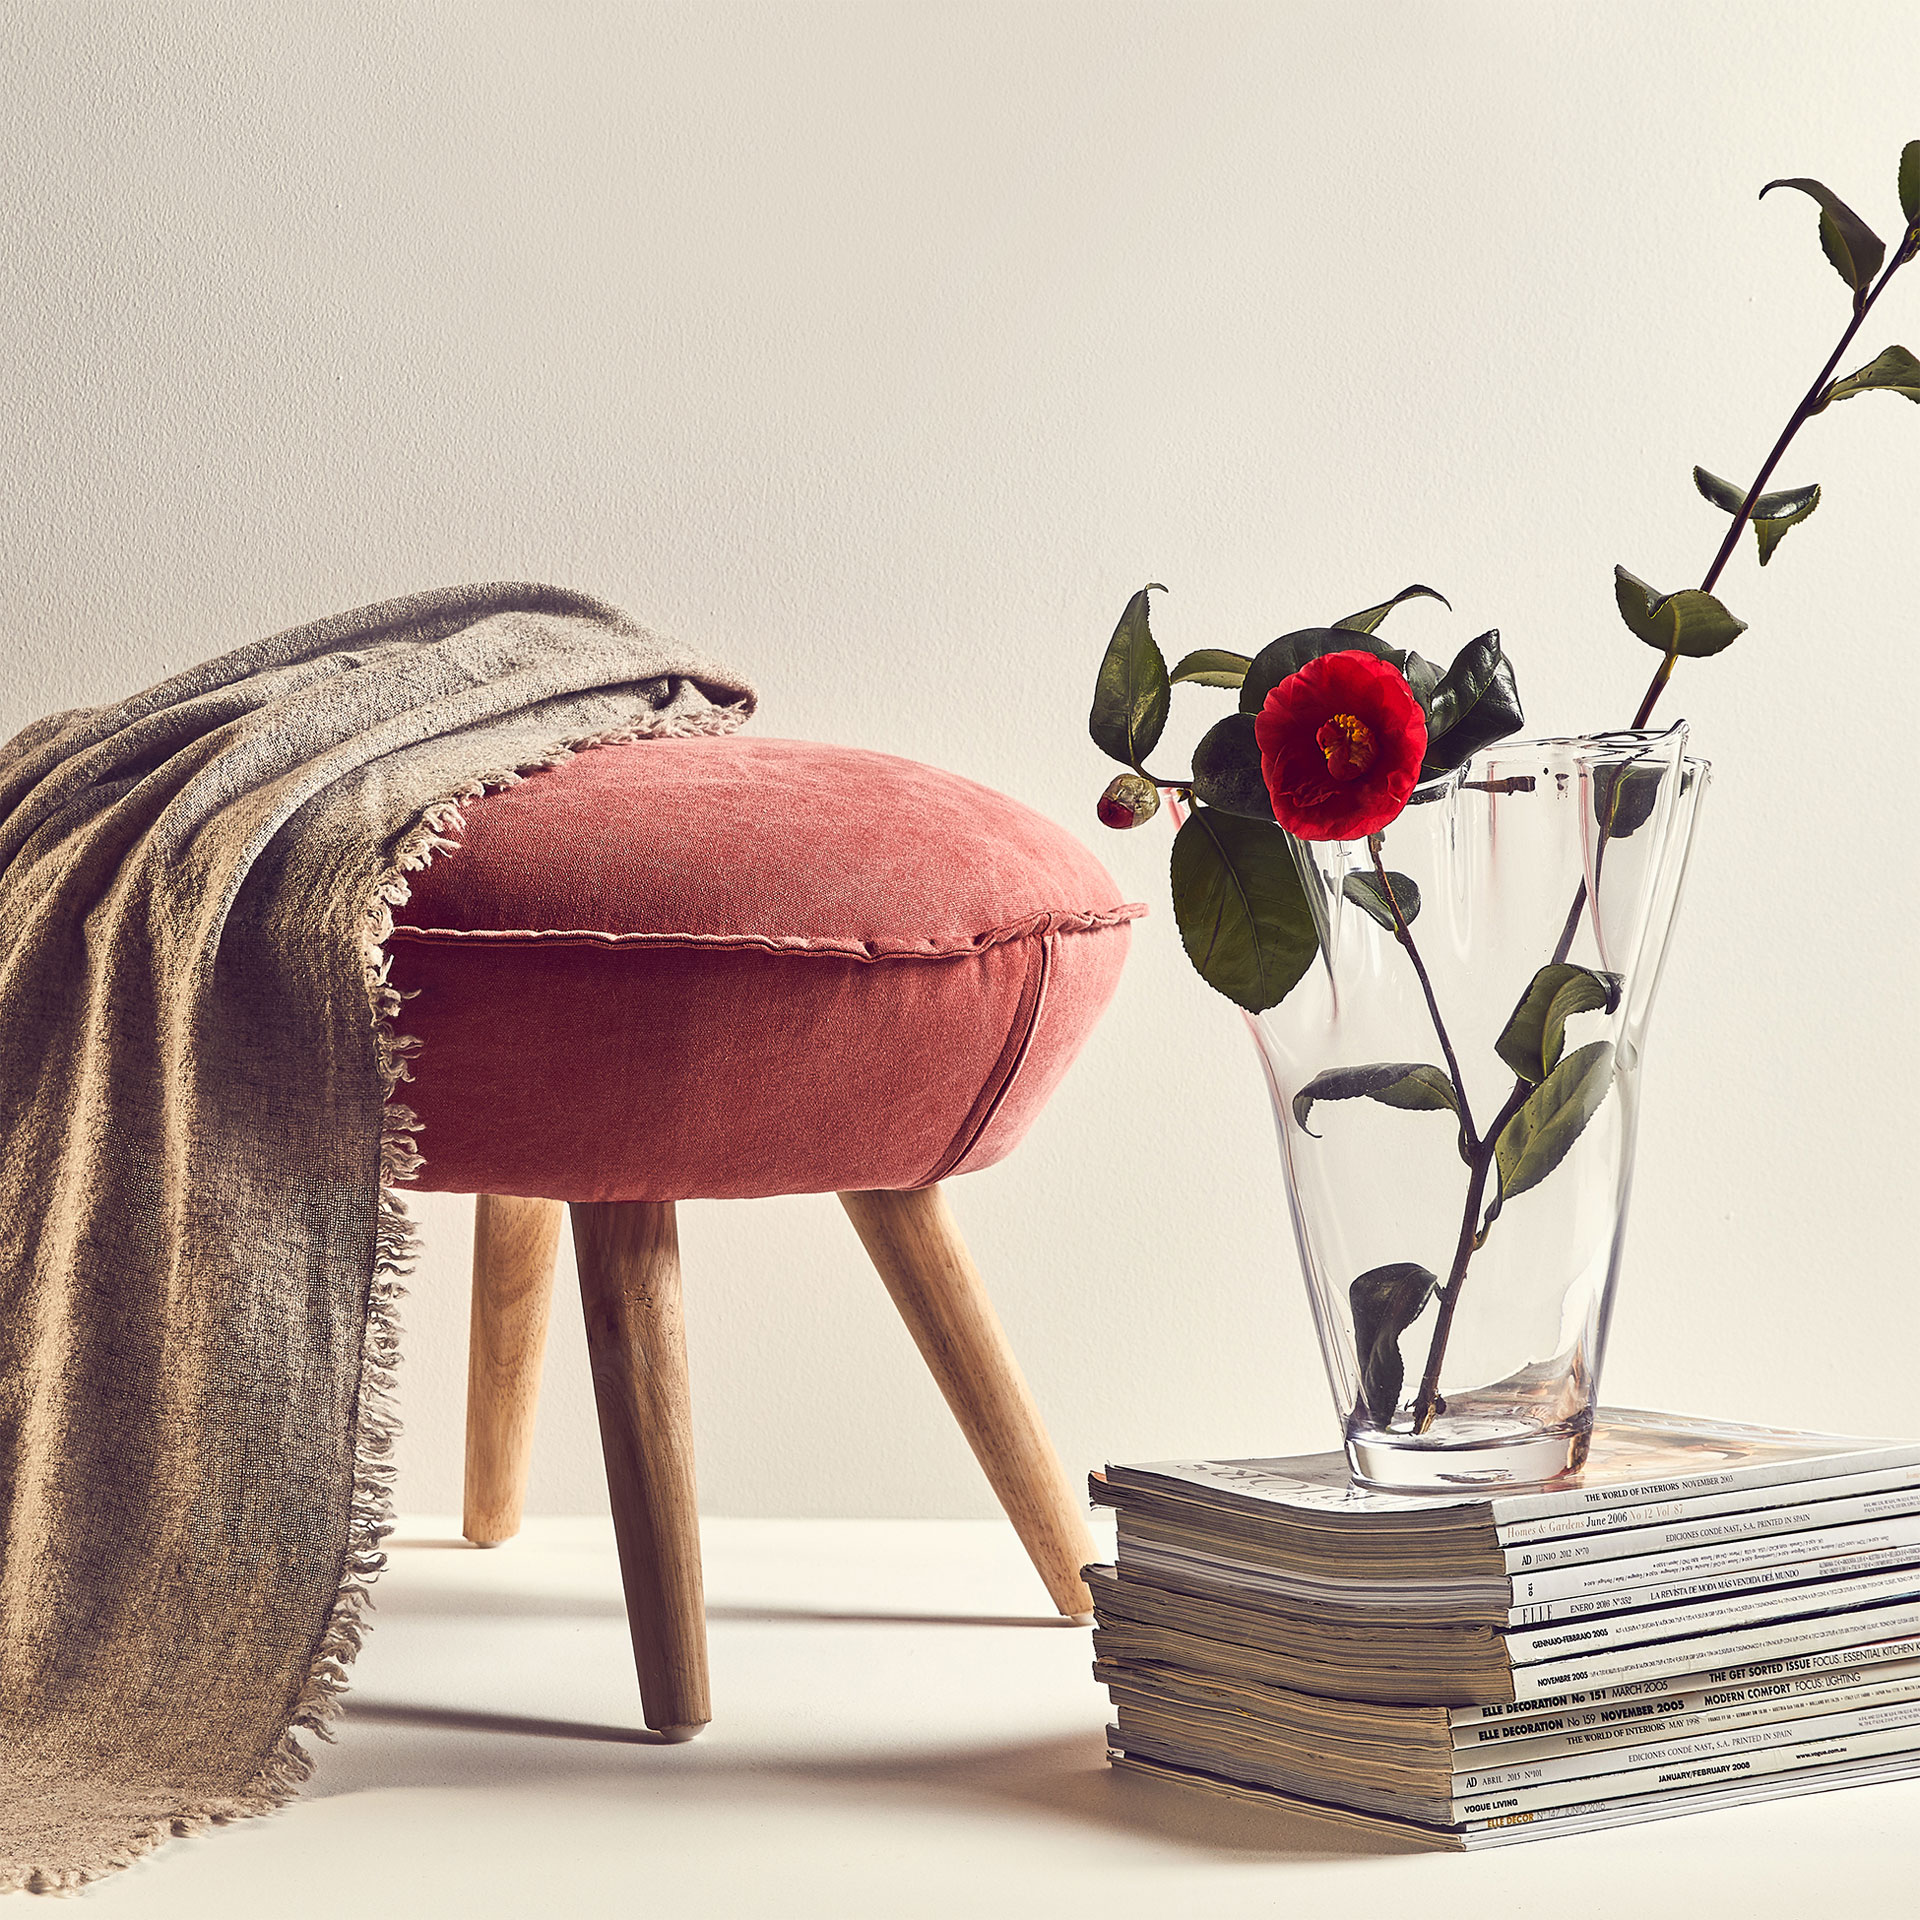 Rosy nordic stool with wooden legs